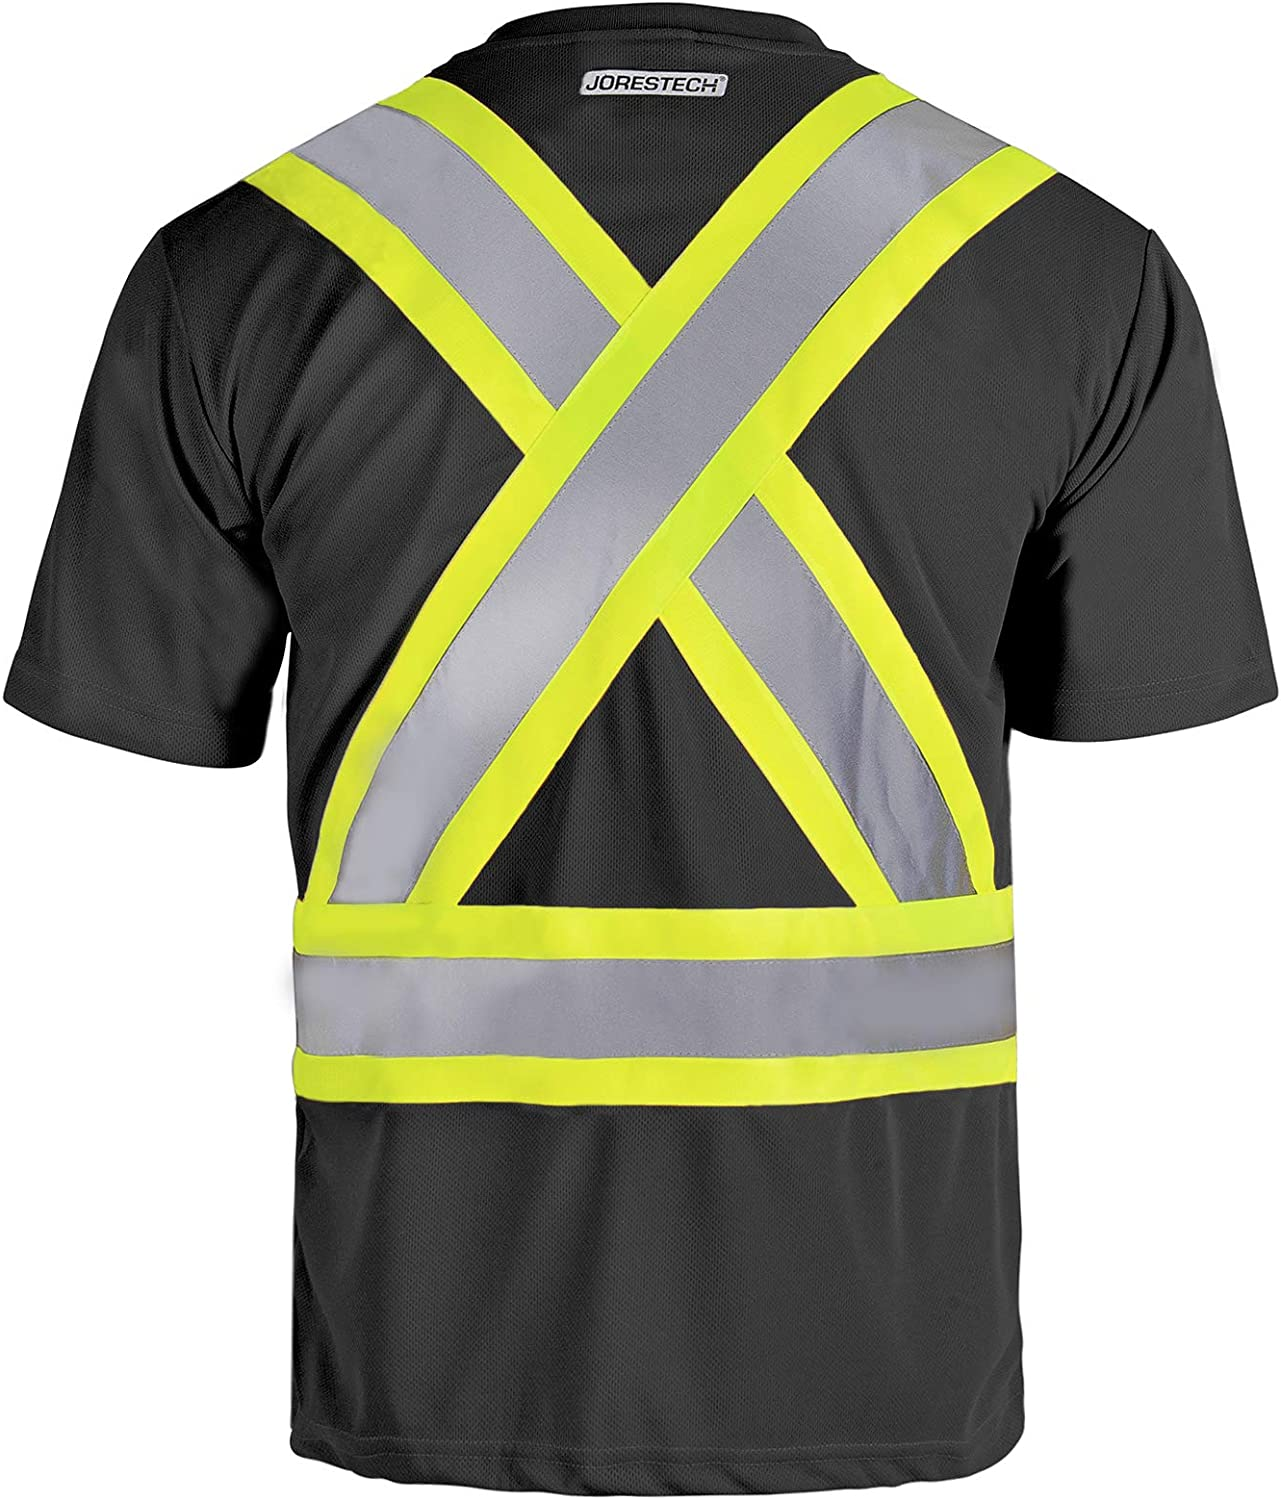 JORESTECH Safety T Shirt Challenge the lowest price Indianapolis Mall of Japan Reflective X in High Back Visibility Sh